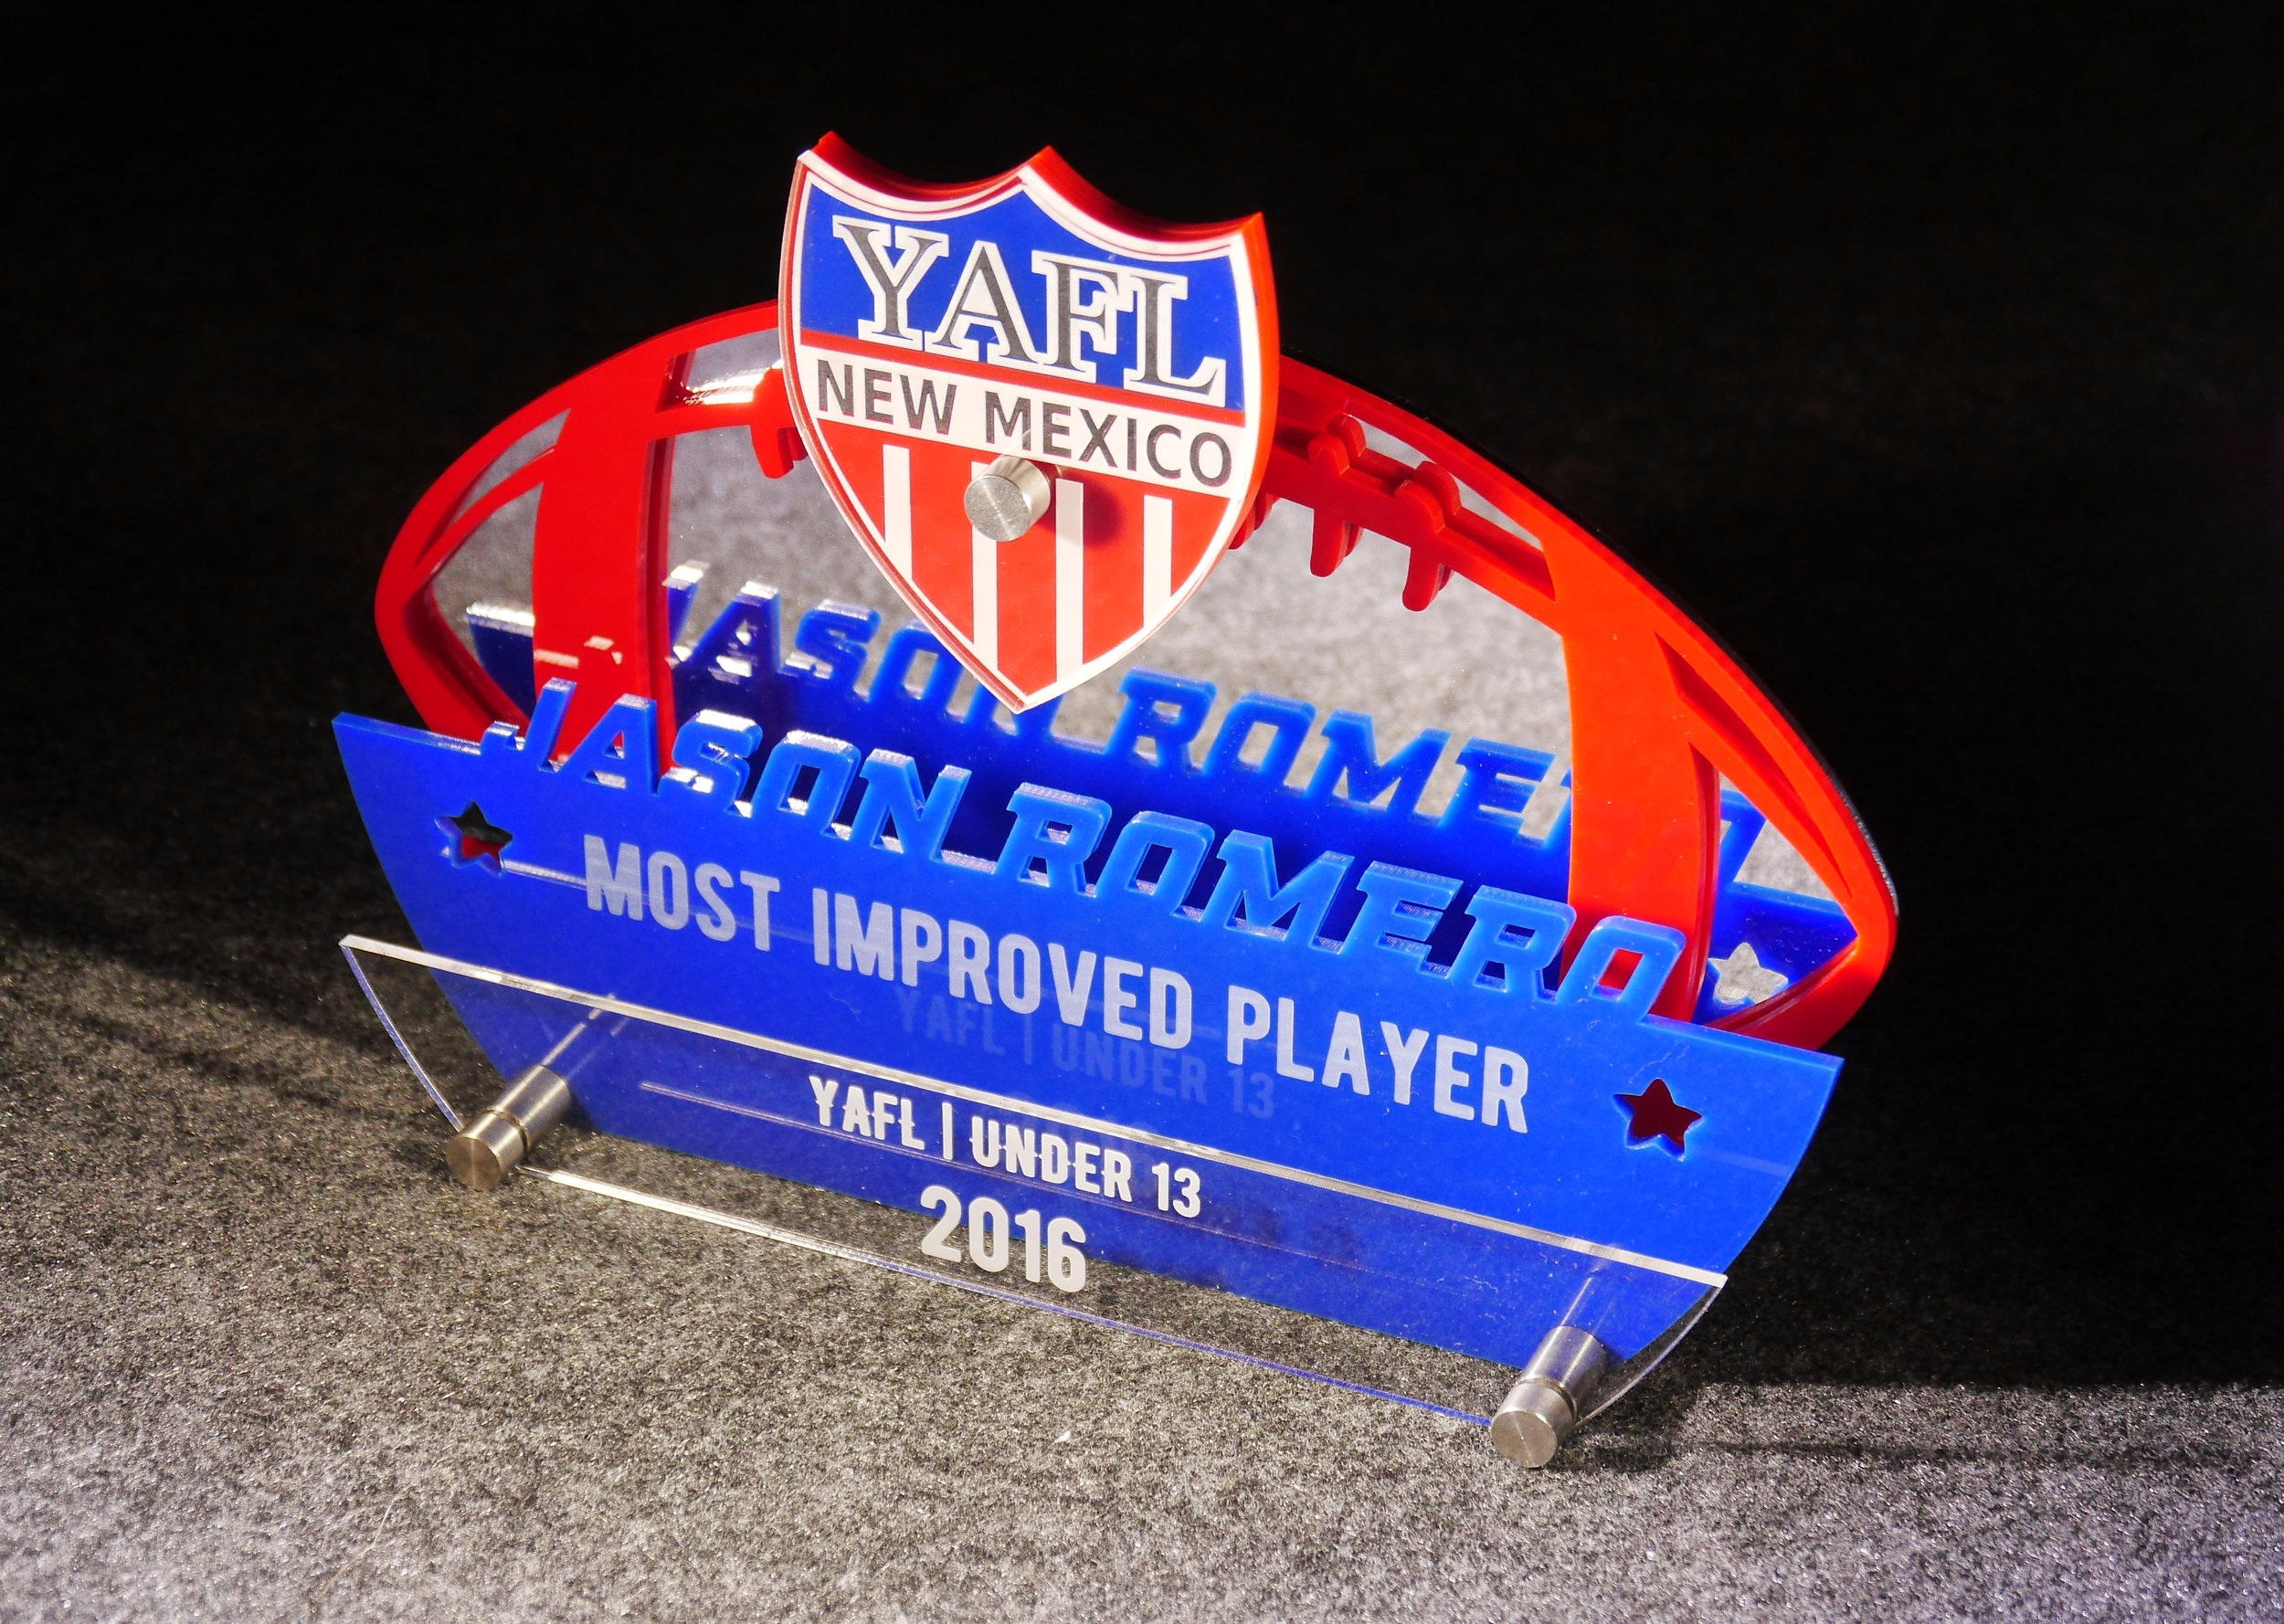 YAFL - Football League Most Improved Player Award  Contact us for pricing information.